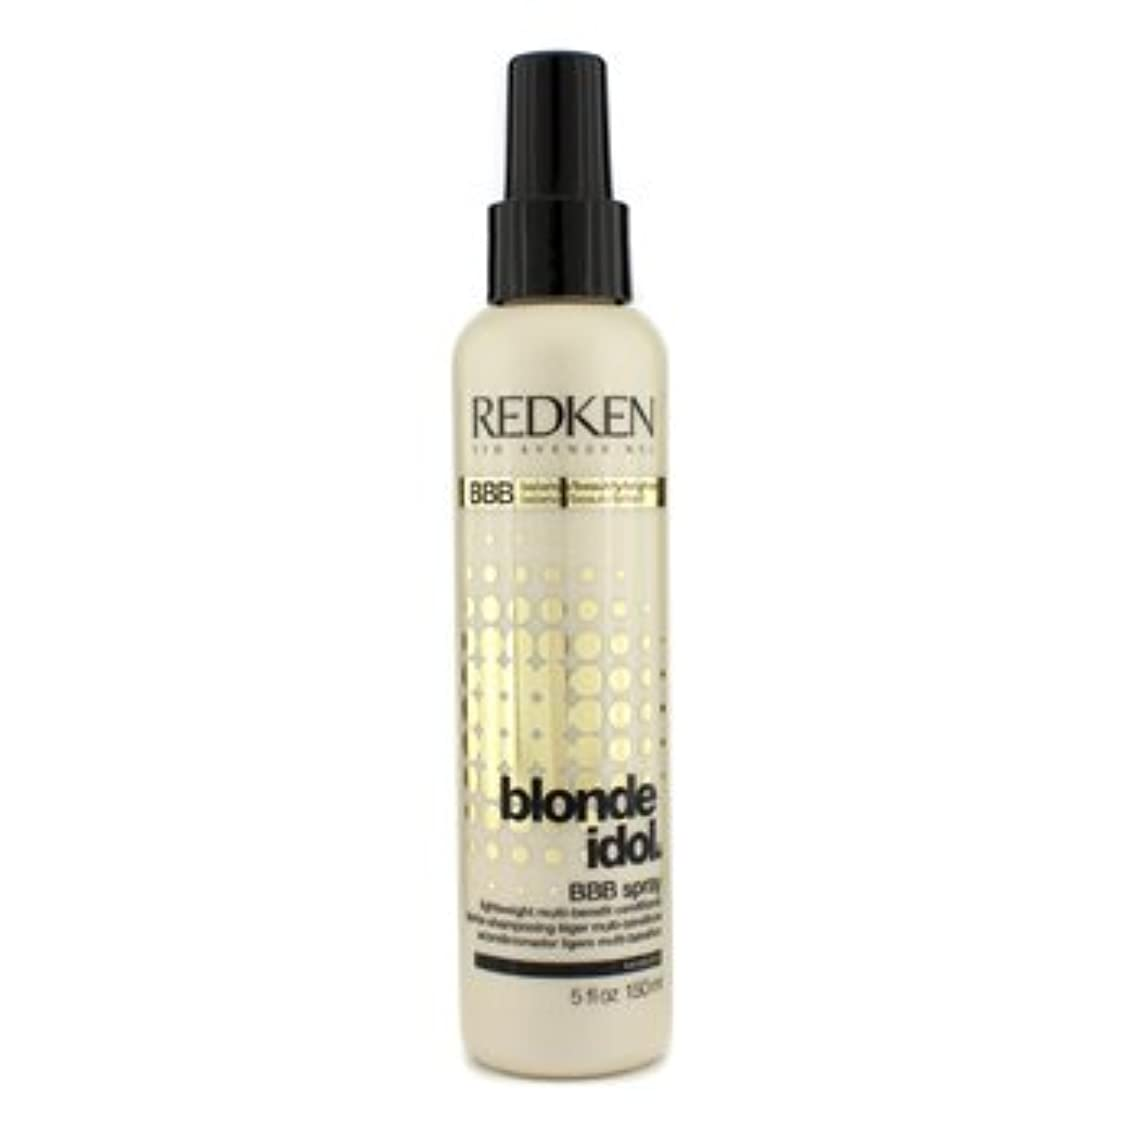 ファン信者バドミントン[Redken] Blonde Idol BBB Spray Lightweight Multi-Benefit Conditioner (For Beautiful Blonde Hair) 150ml/5oz